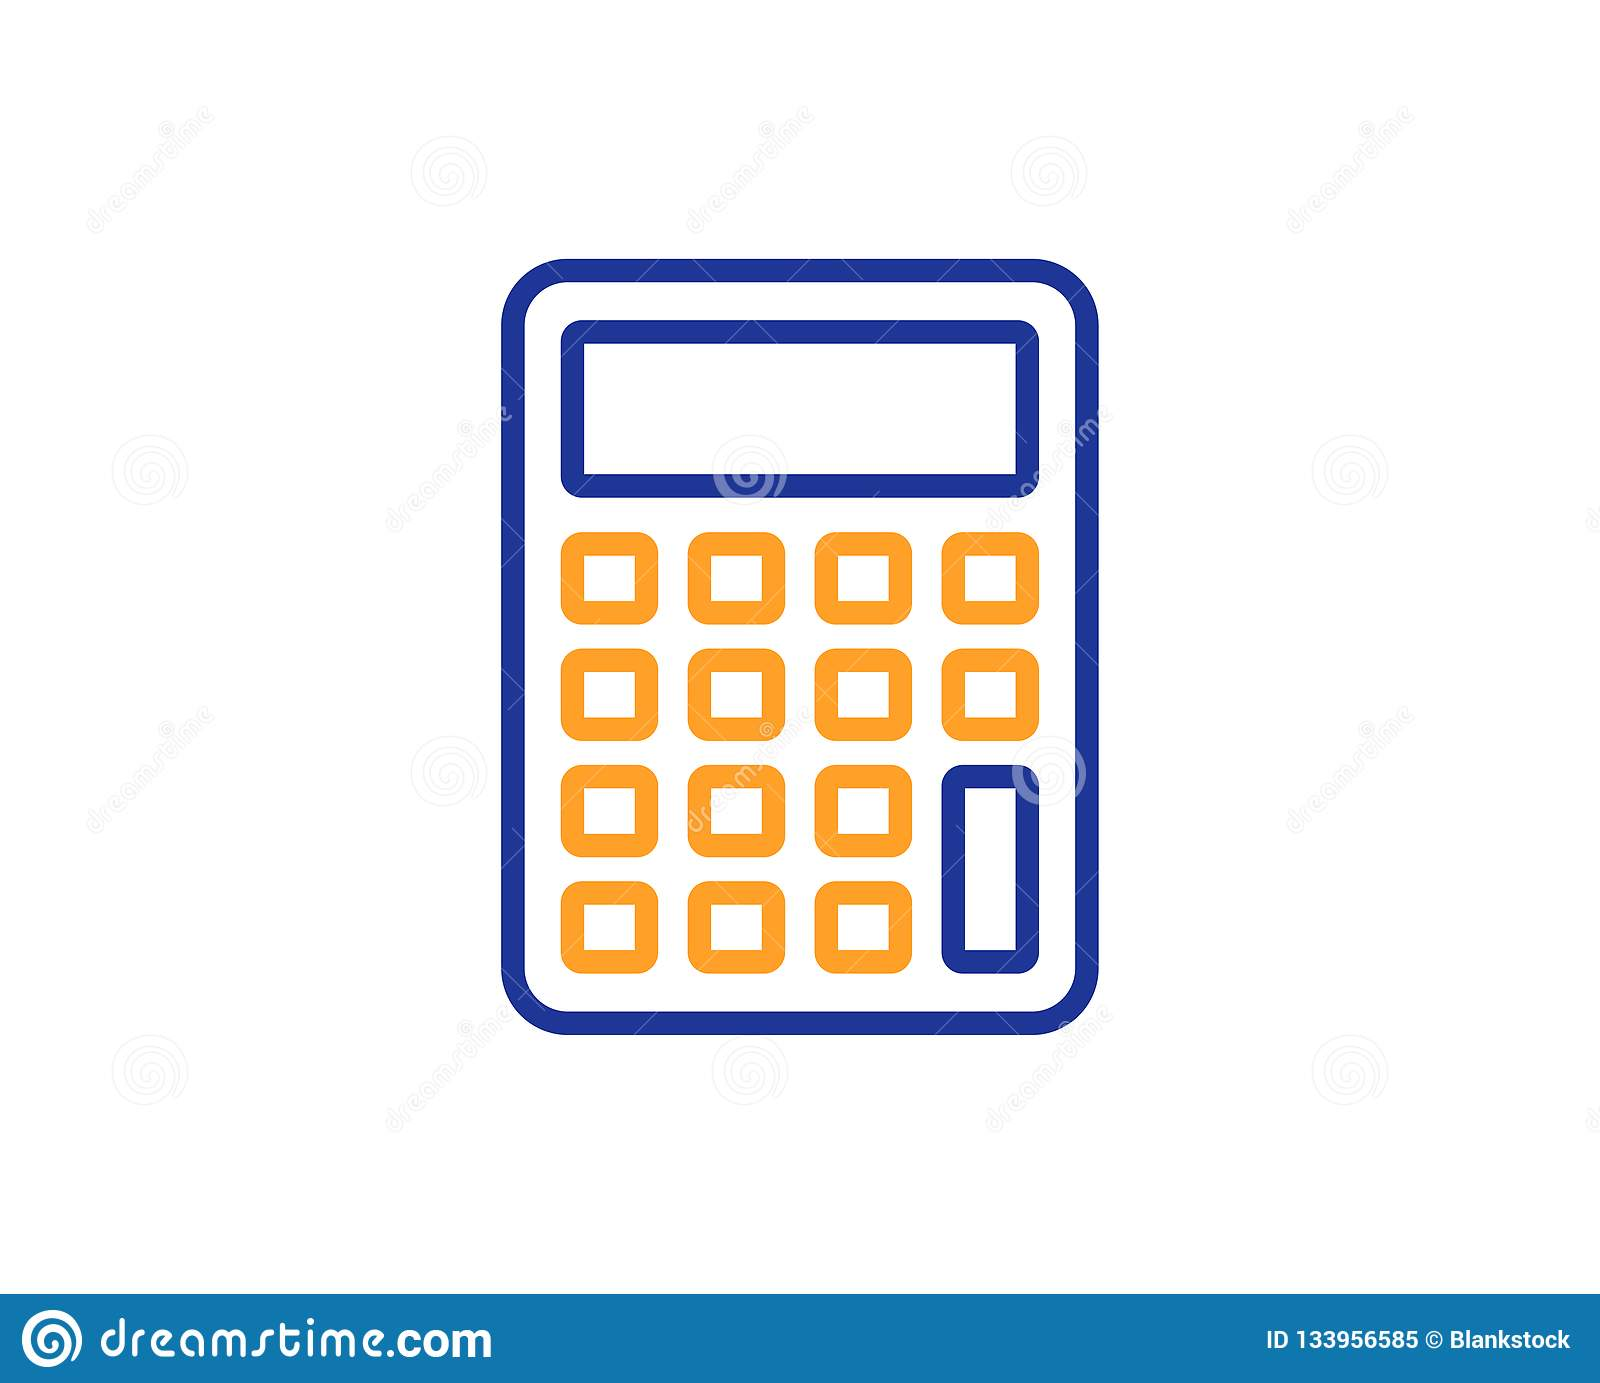 Calculator Line Icon  Accounting Sign  Vector Stock Vector